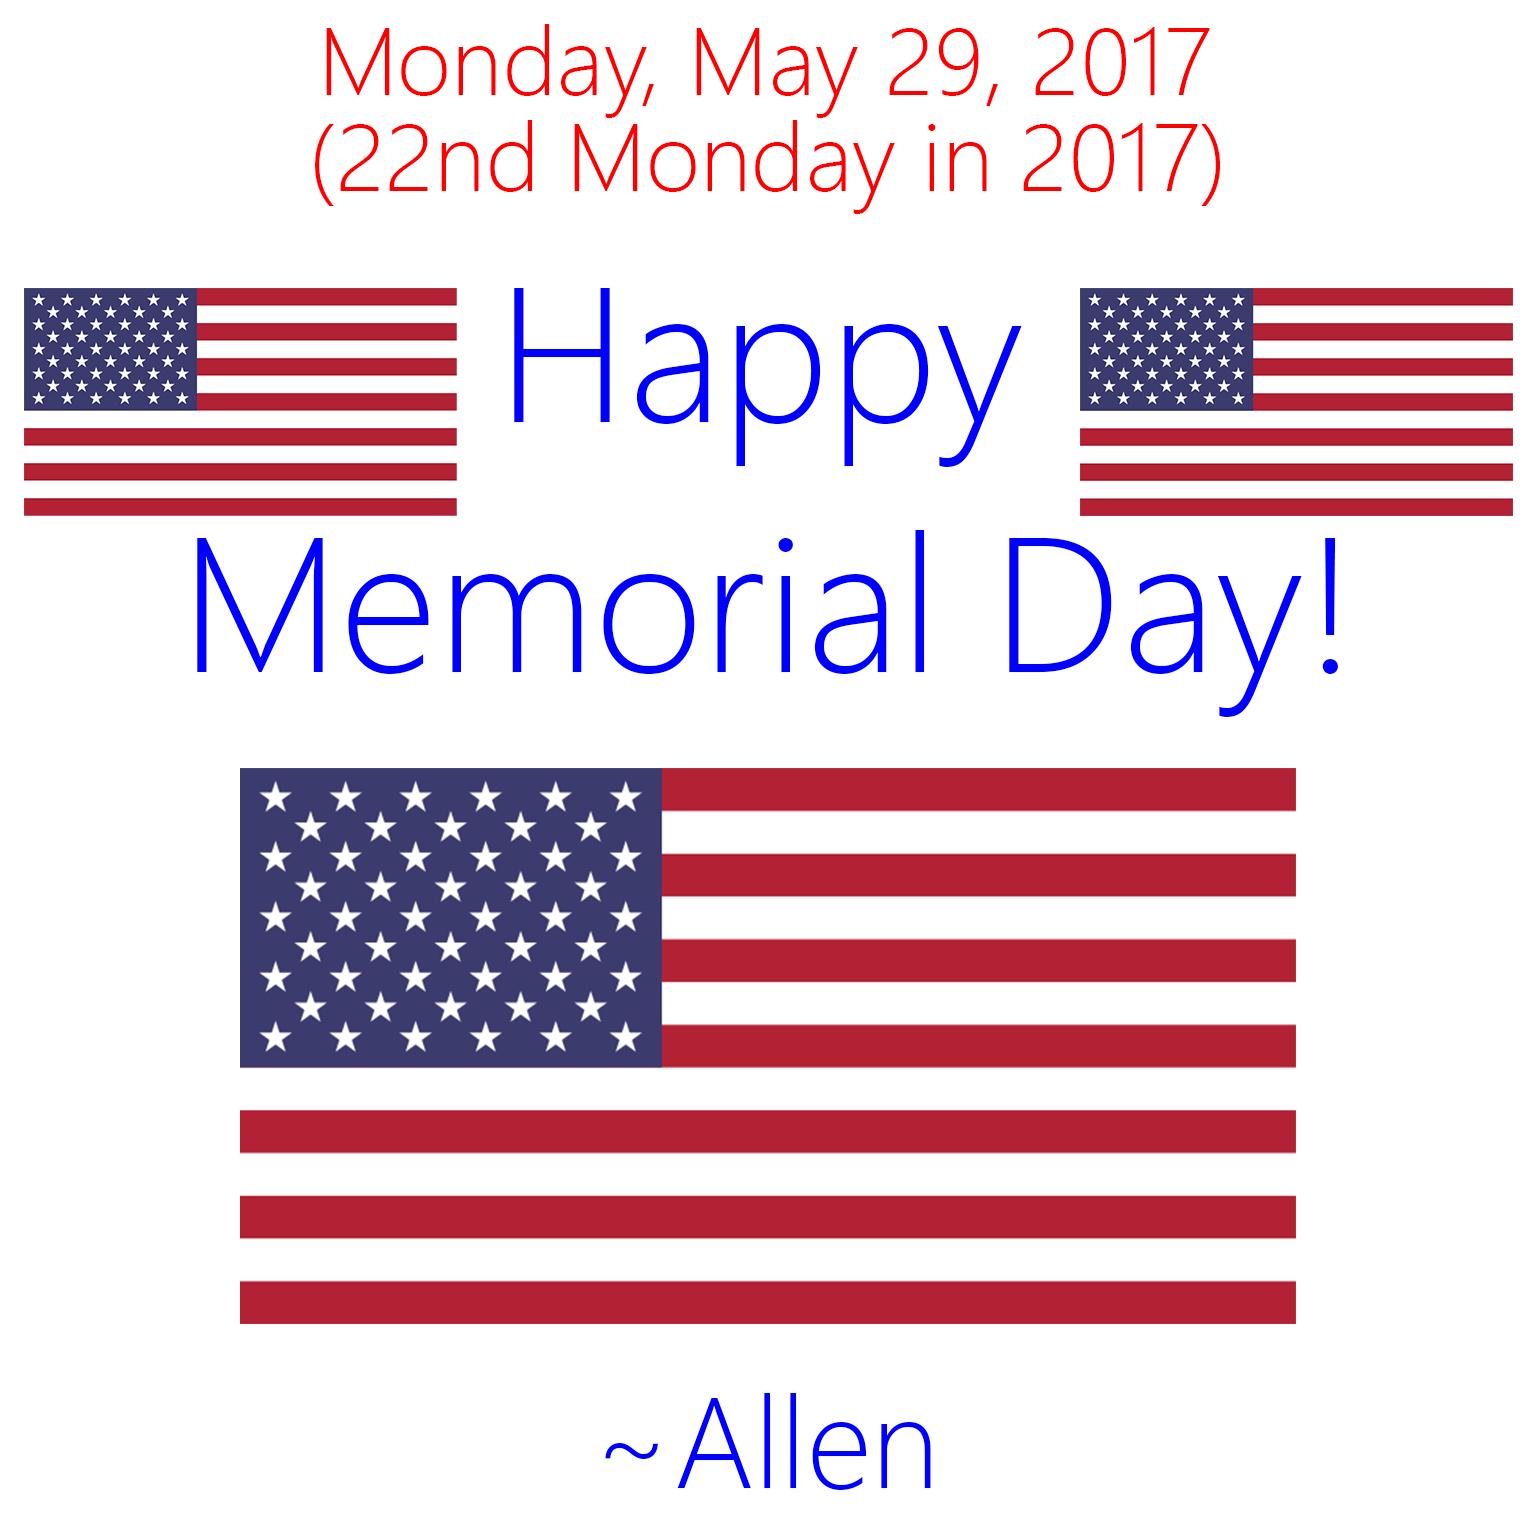 Happy Memorial Day 2017 by AllenAcNguyen on DeviantArt